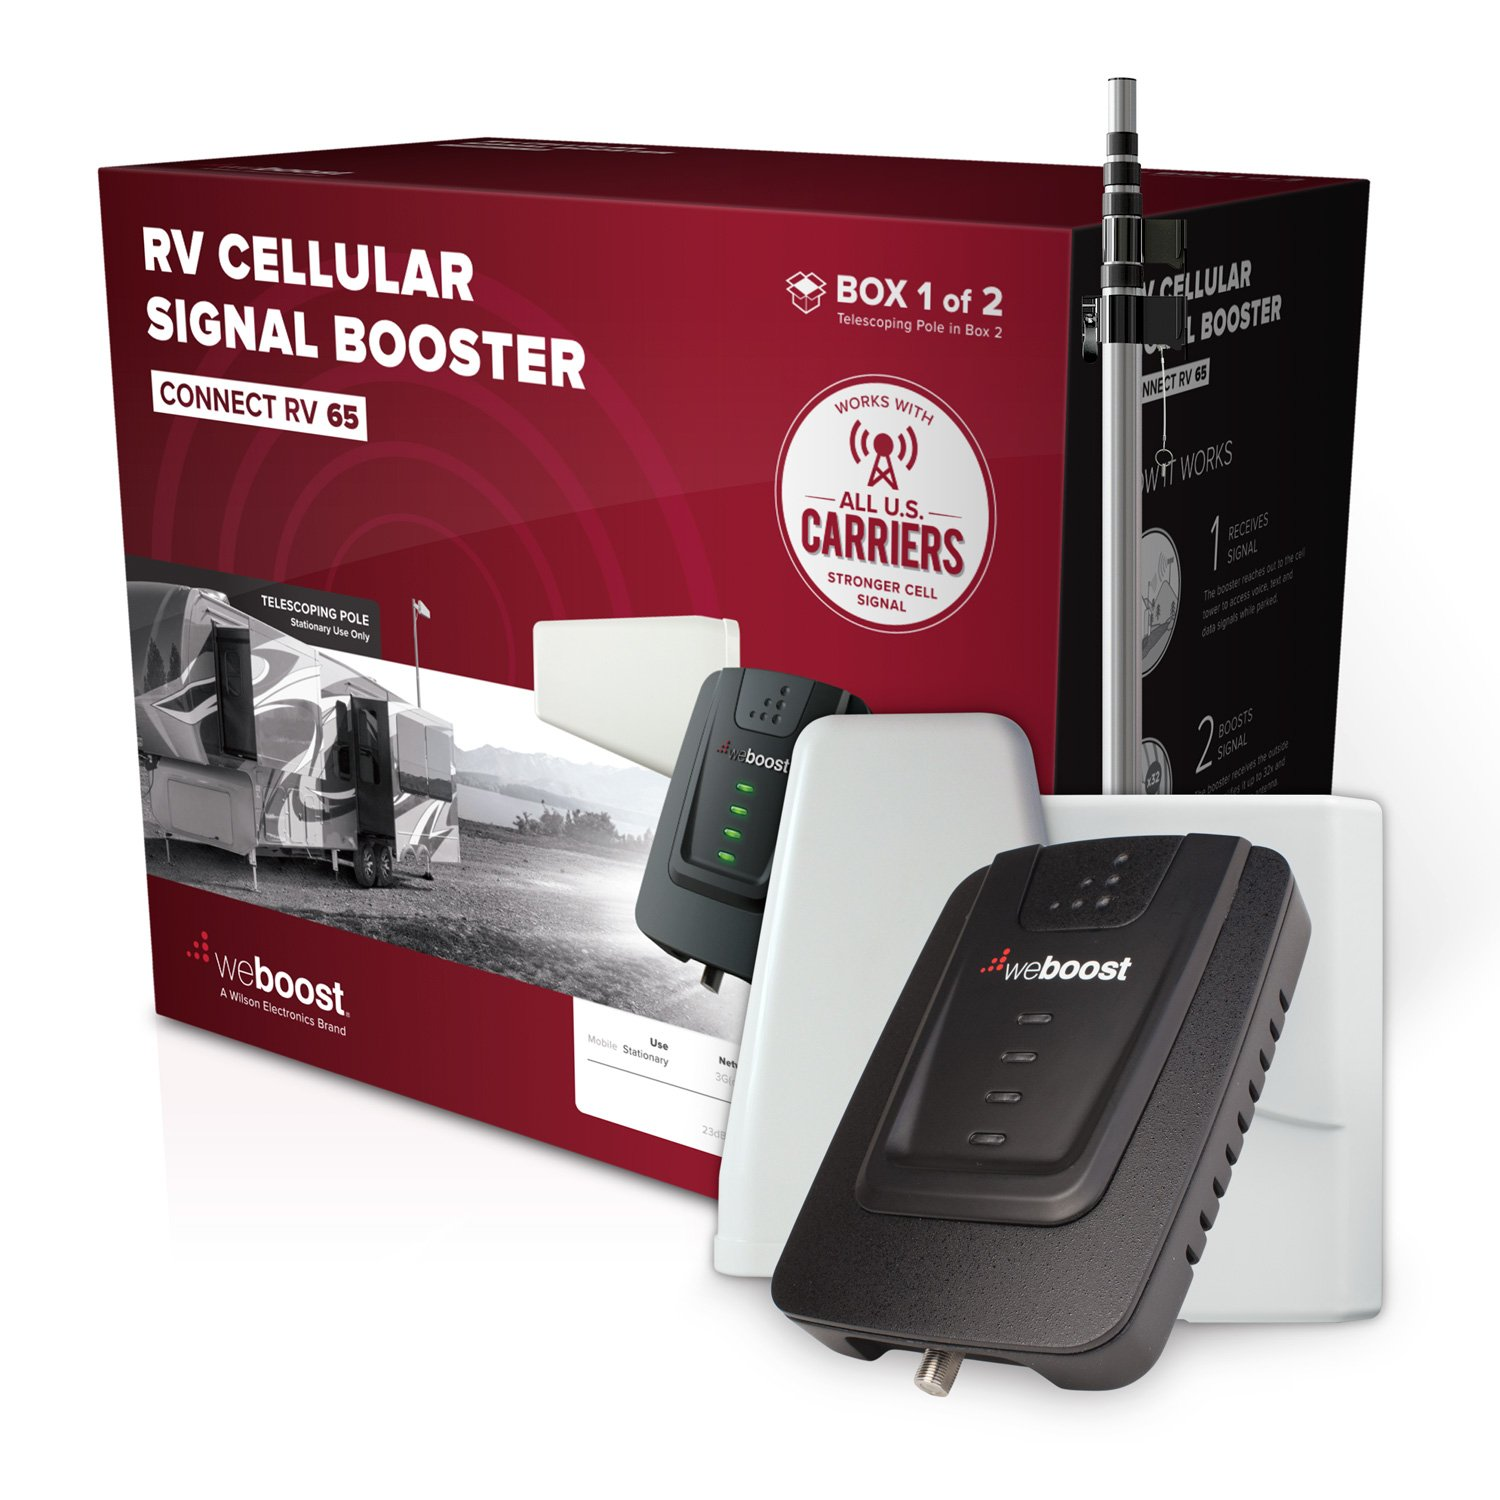 weBoost Connect RV 65 (471203) - Cell Phone Signal Booster for your Towable RV or Motorhome - Verizon, AT&T, T-Mobile, Sprint - Enhance Your Signal up to 32x - Stationary Use by weBoost